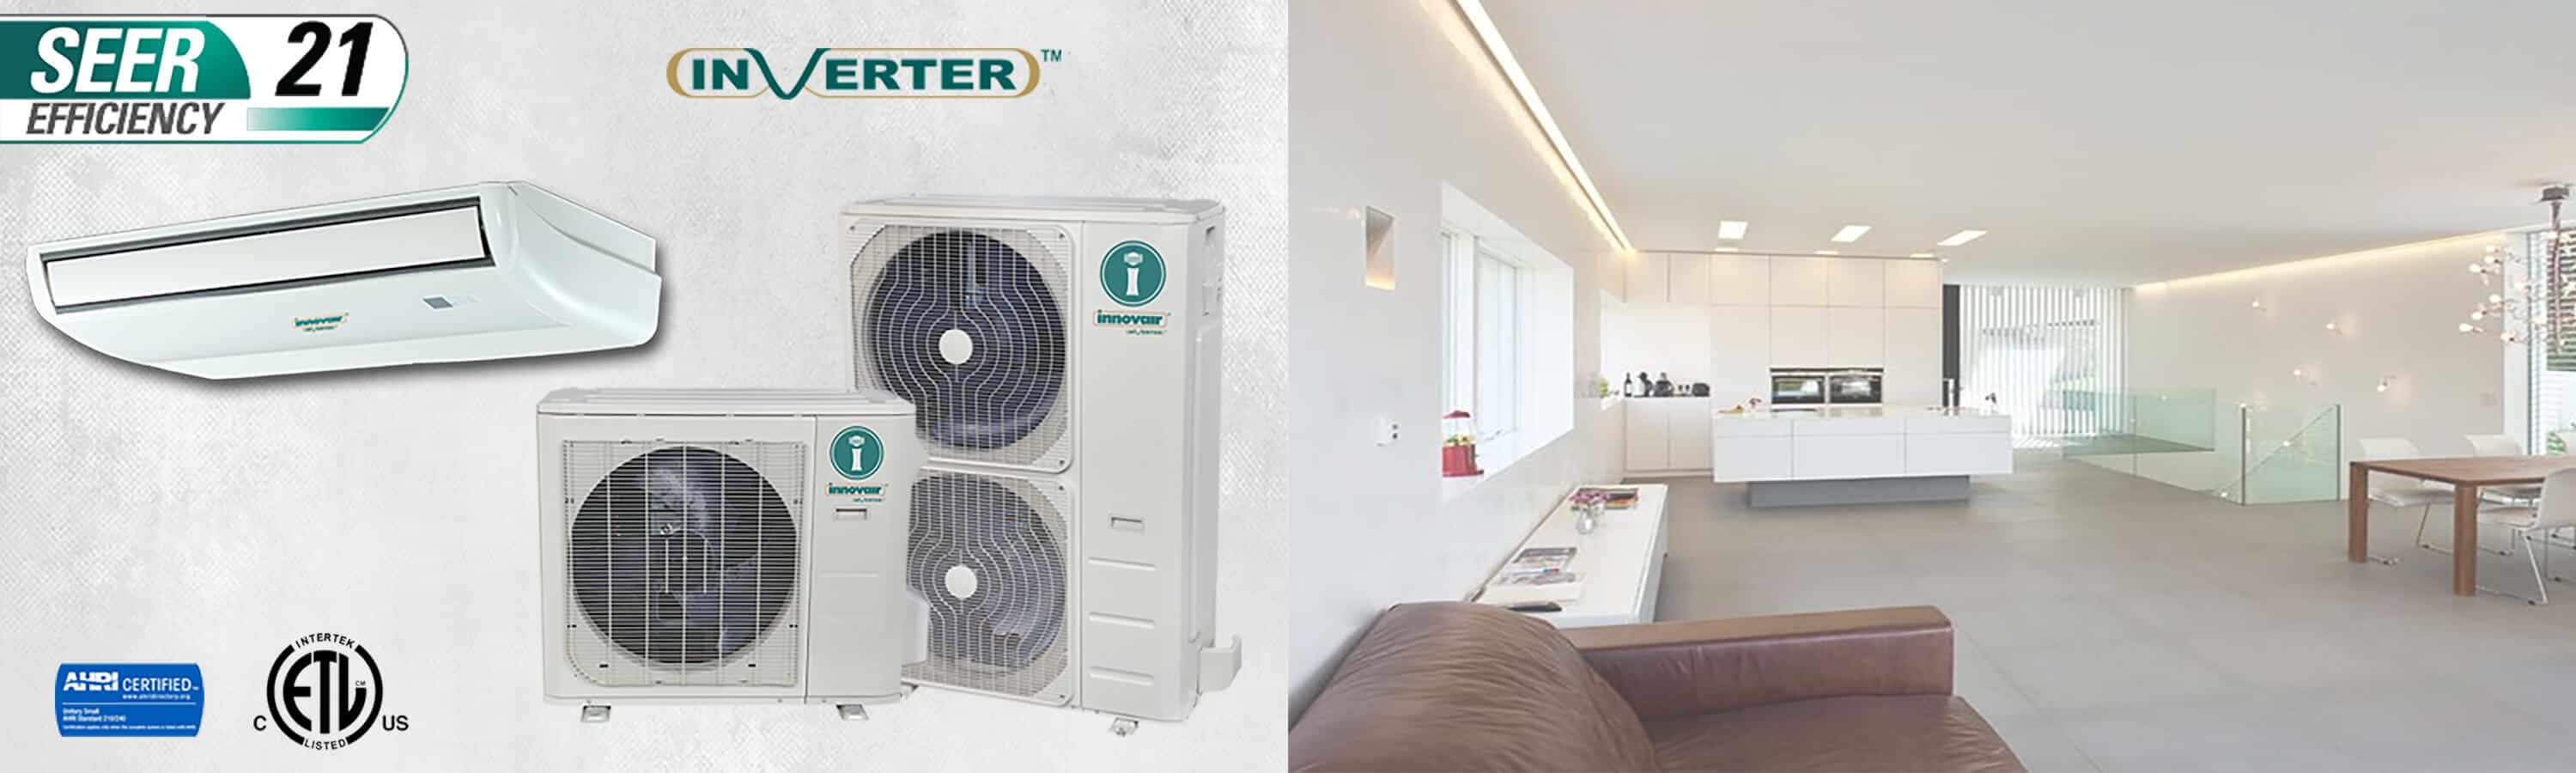 Floor-Ceiling-Inverter-Product-Banner